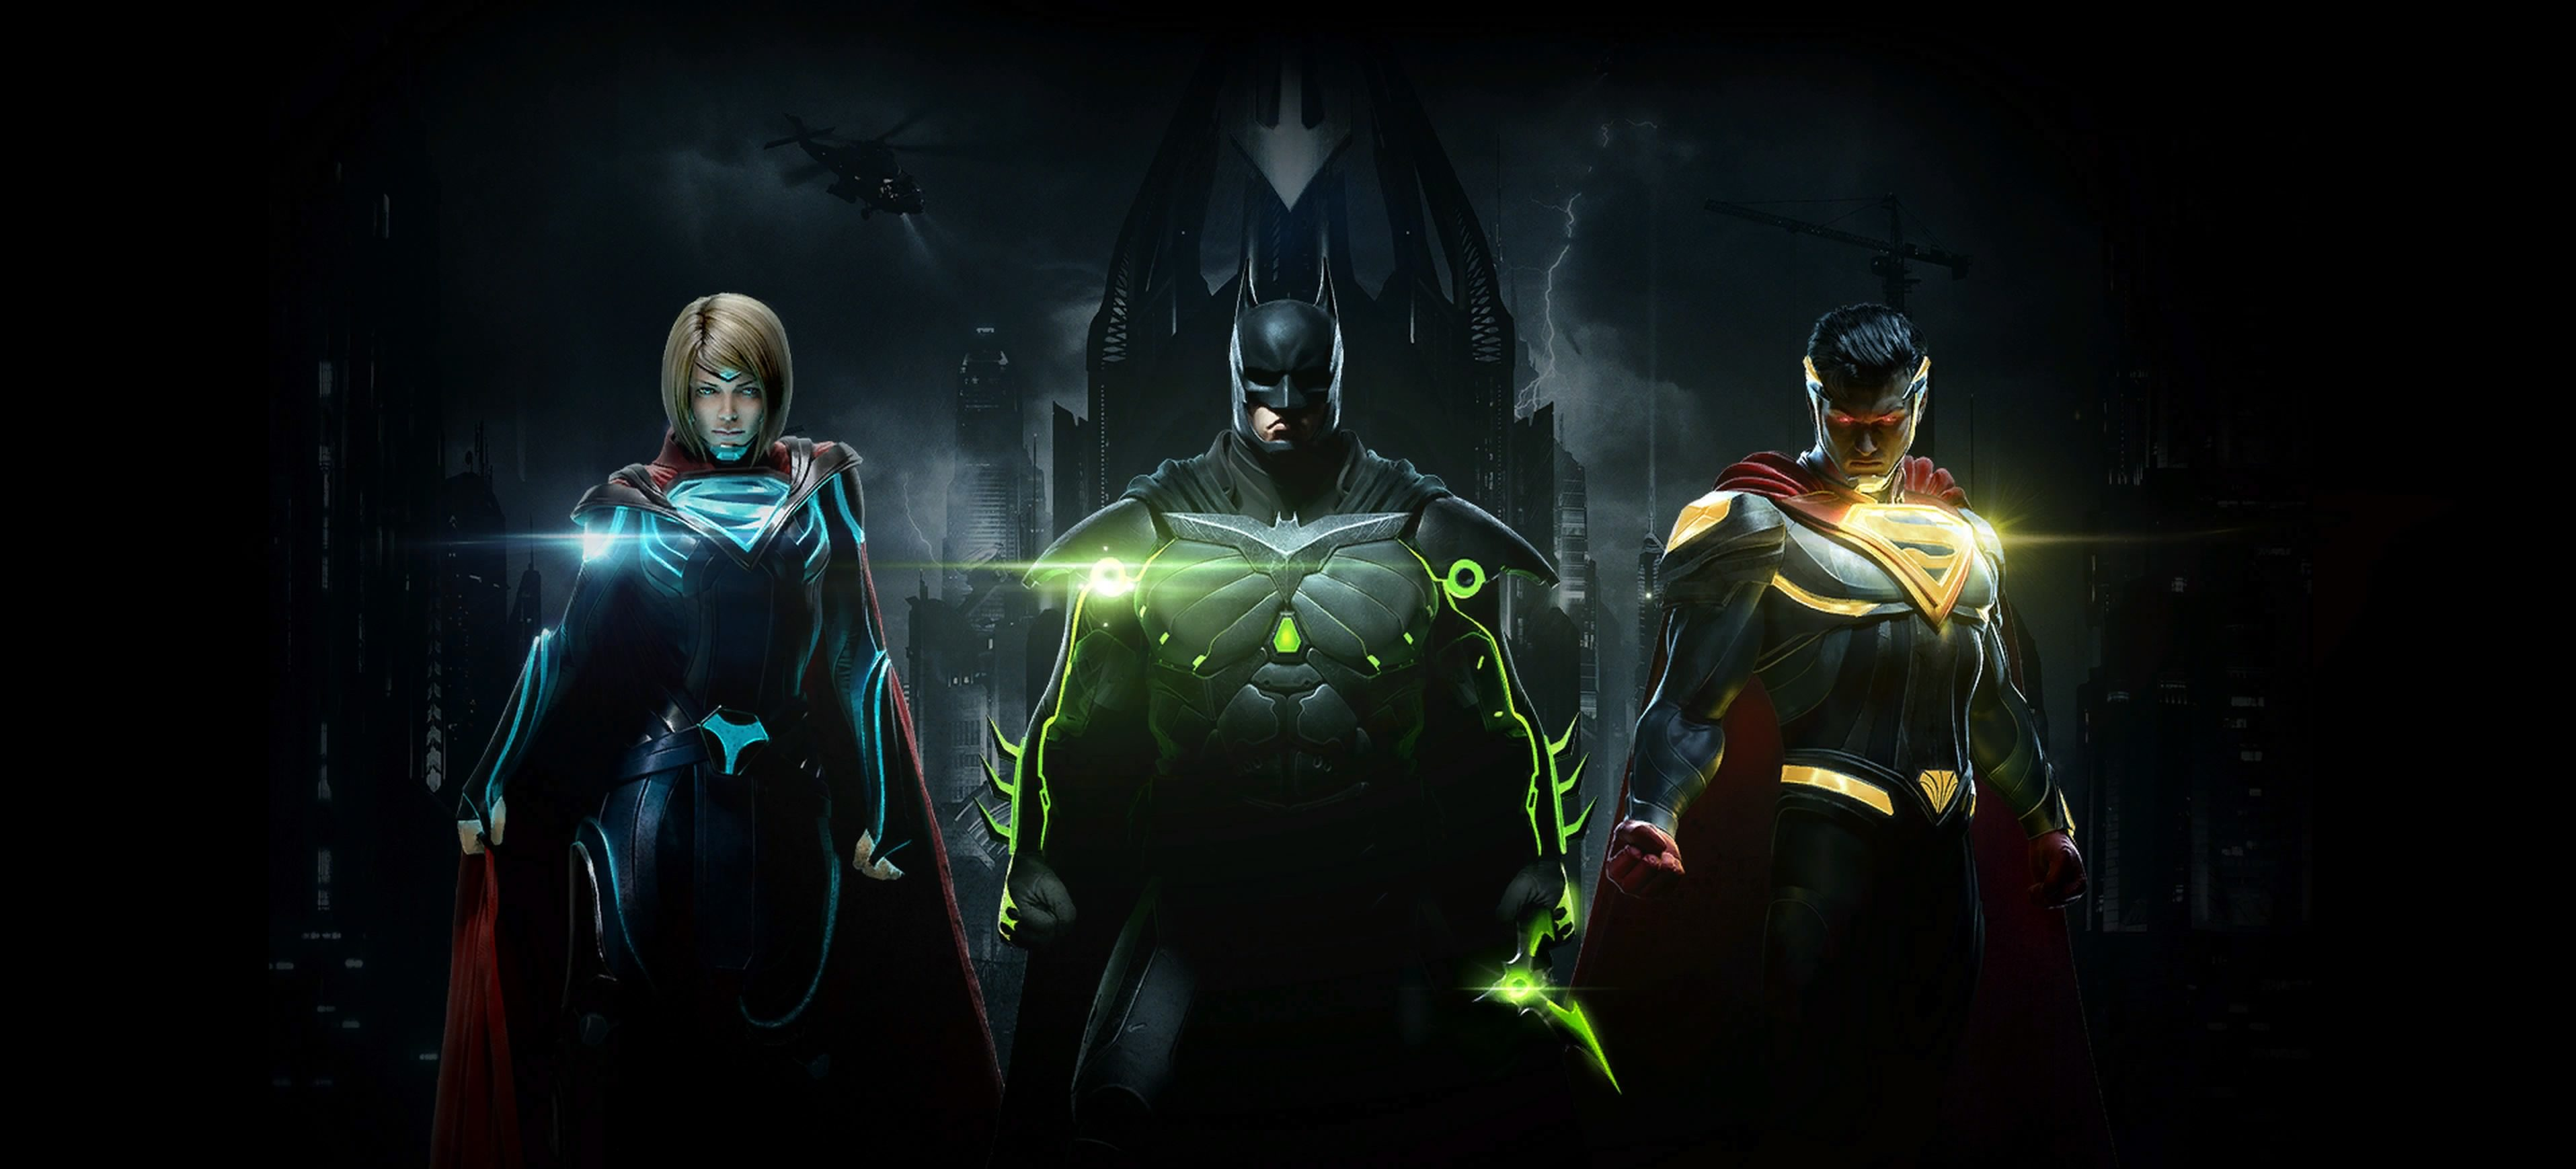 Photo of Injustice 2 is finally landing on PC, Open Beta kicks off today